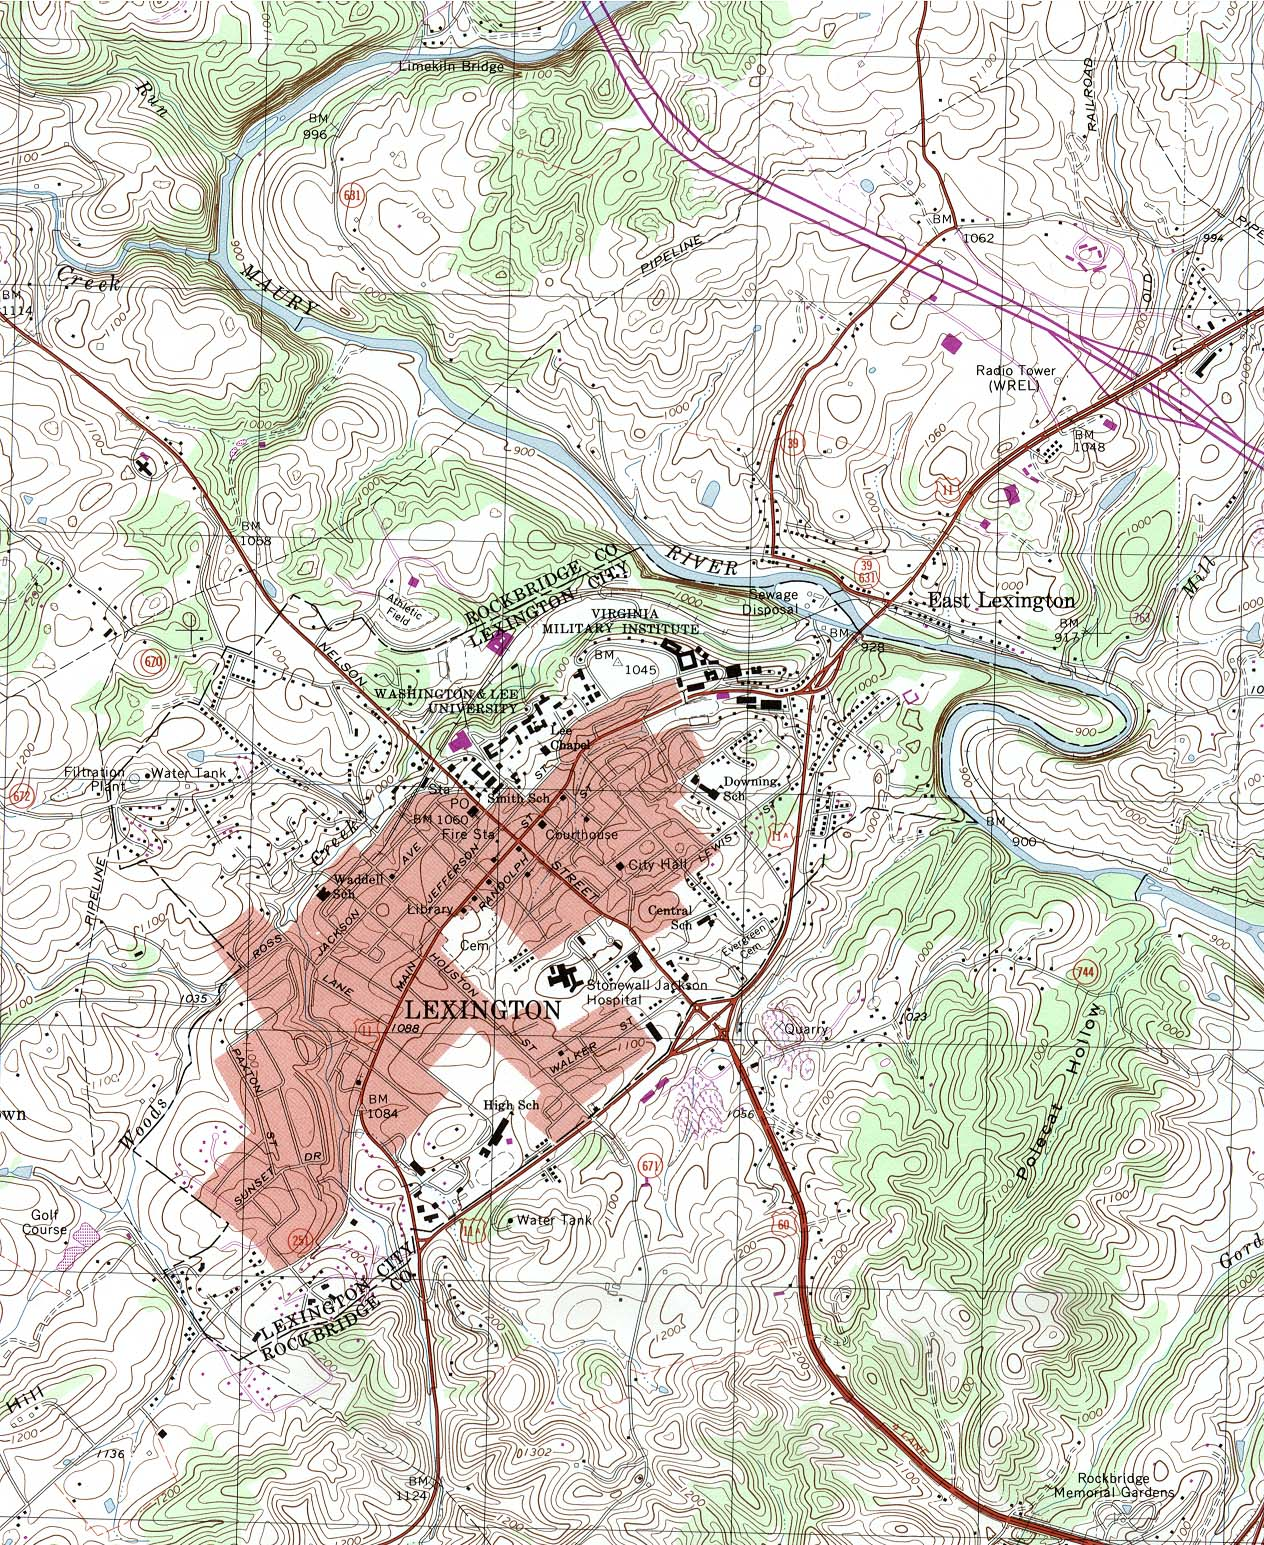 Mapa Topográfico de la Ciudad de Lexington, Virginia, Estados Unidos